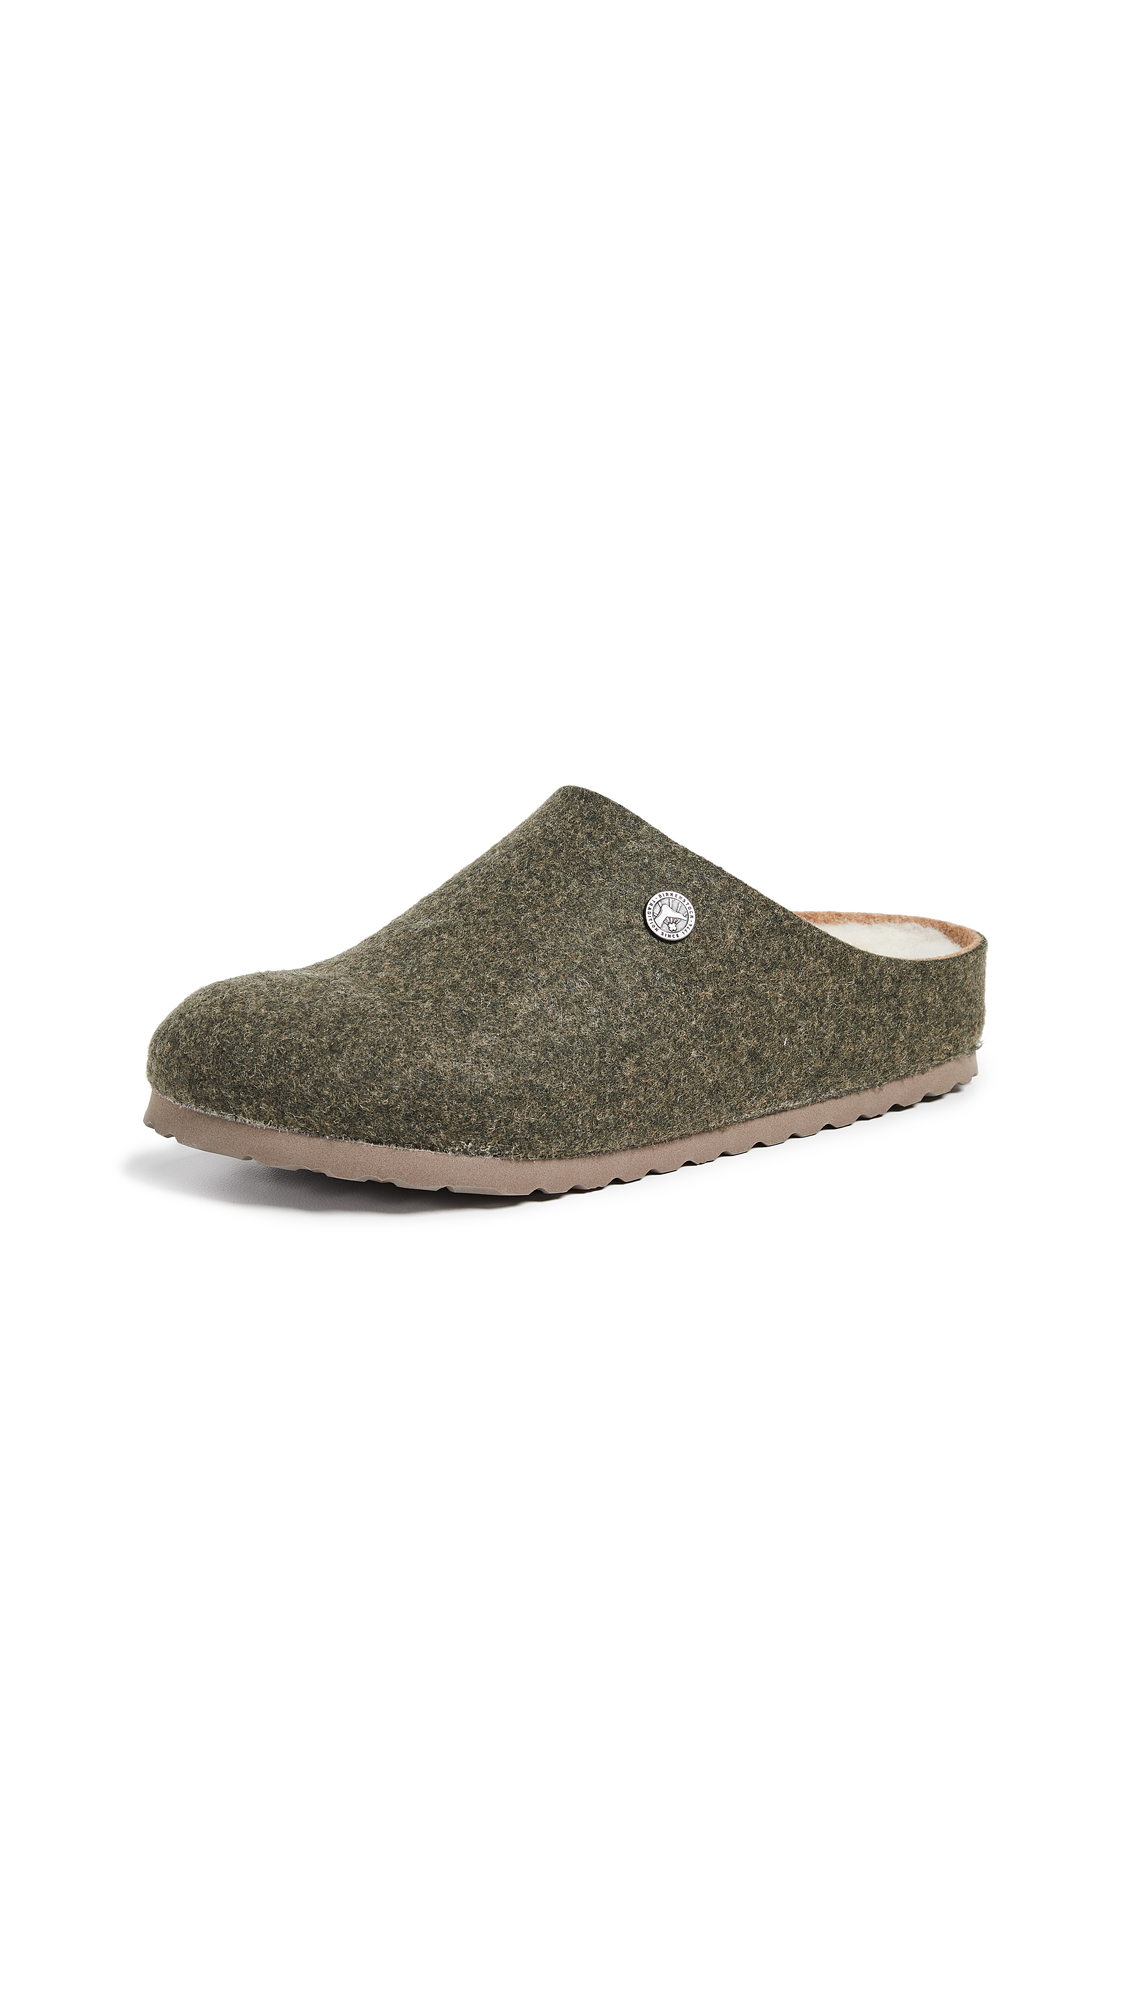 Birkenstock Kaprun Happy Lamb Clogs - Double-Face Khaki